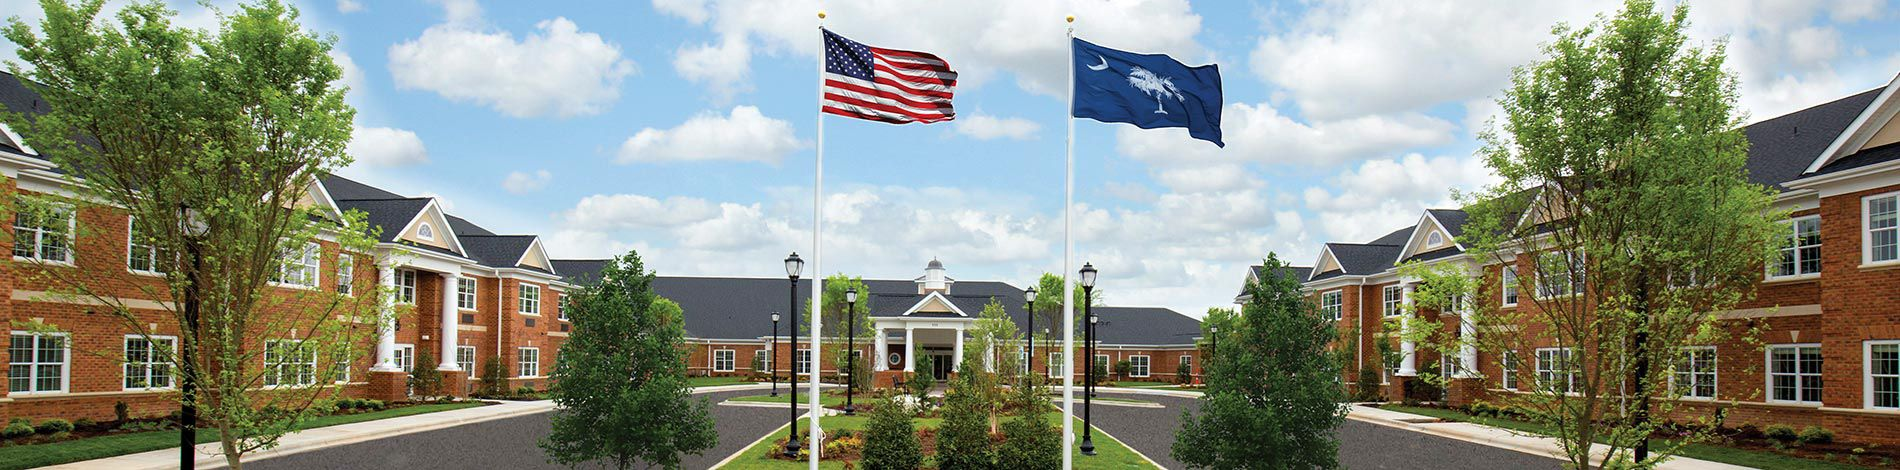 Tega Cay Assisted Living, Memory Care, Rehab